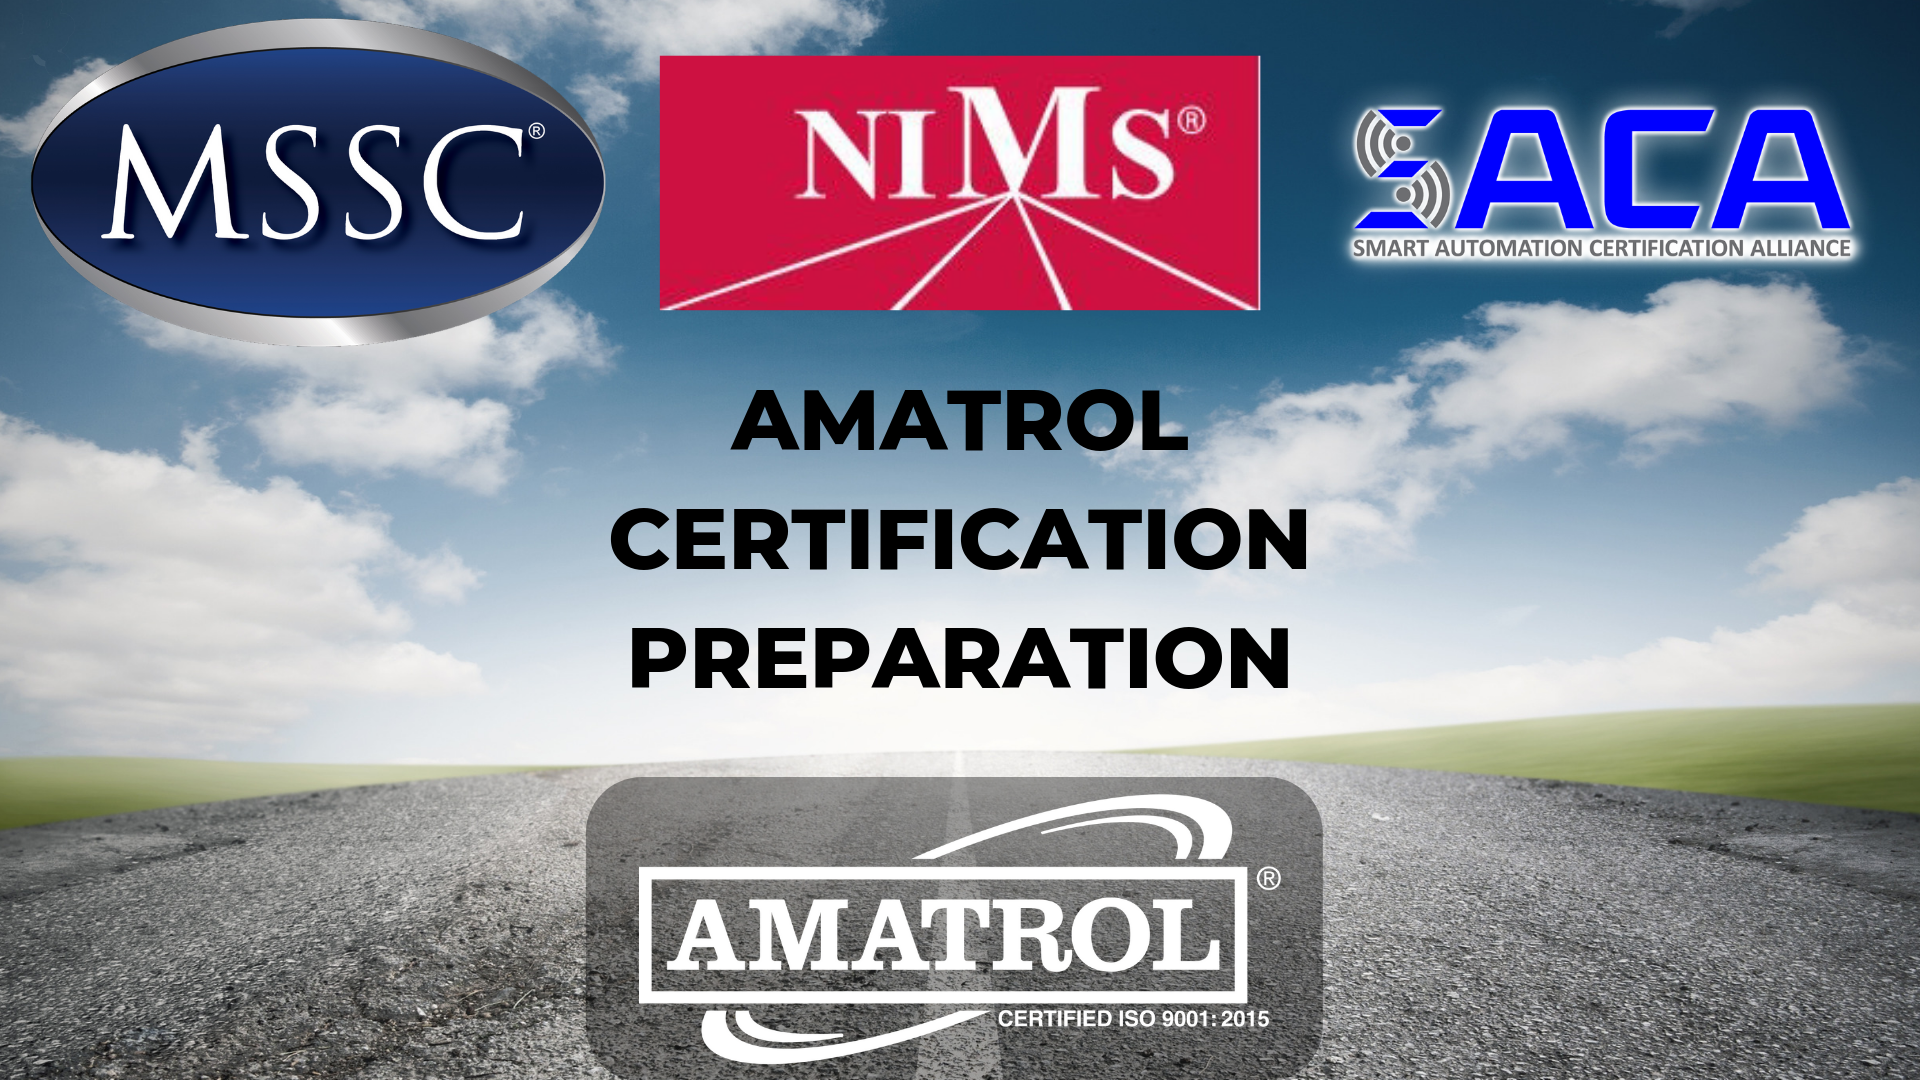 Amatrol Certification Preparation graphic with road leading to horizon with blue sky and clouds and logos for Amatrol, MSSC, NIMS, and SACA